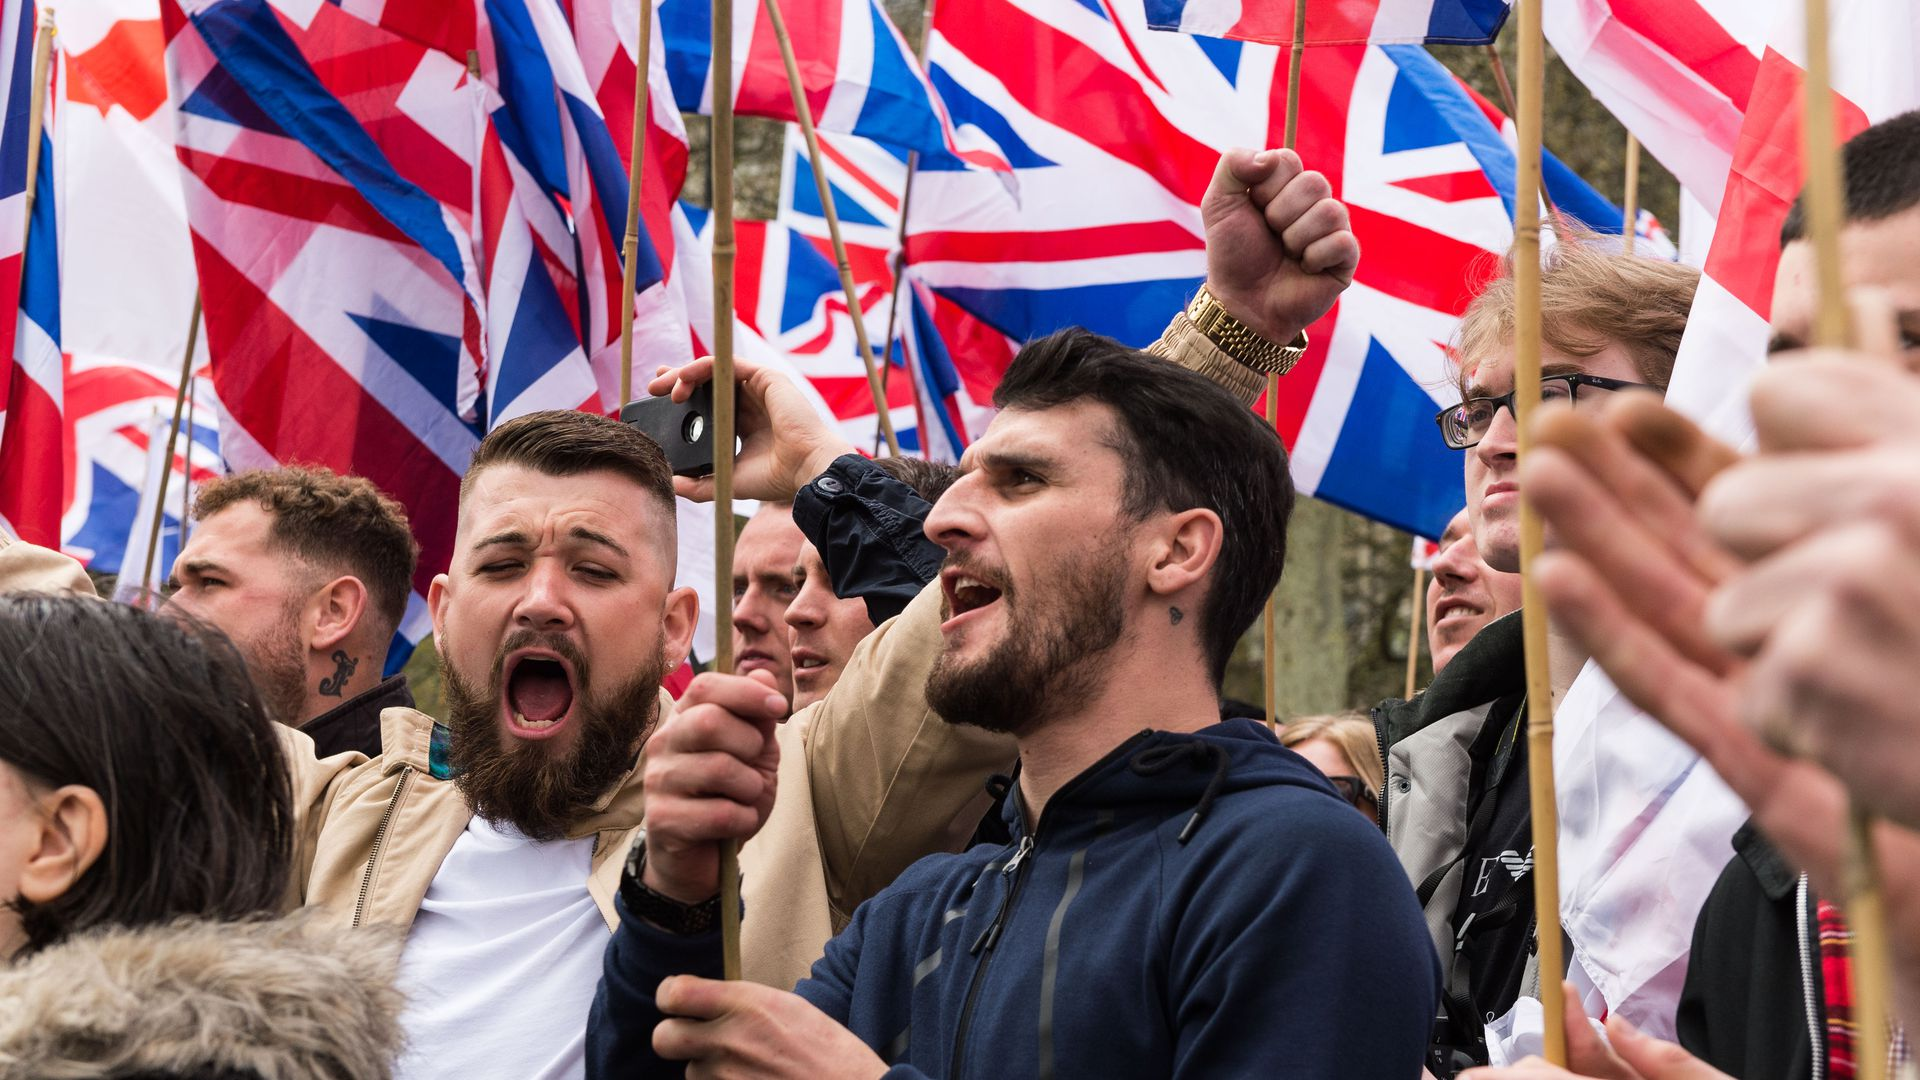 Members of Britain First extremist group